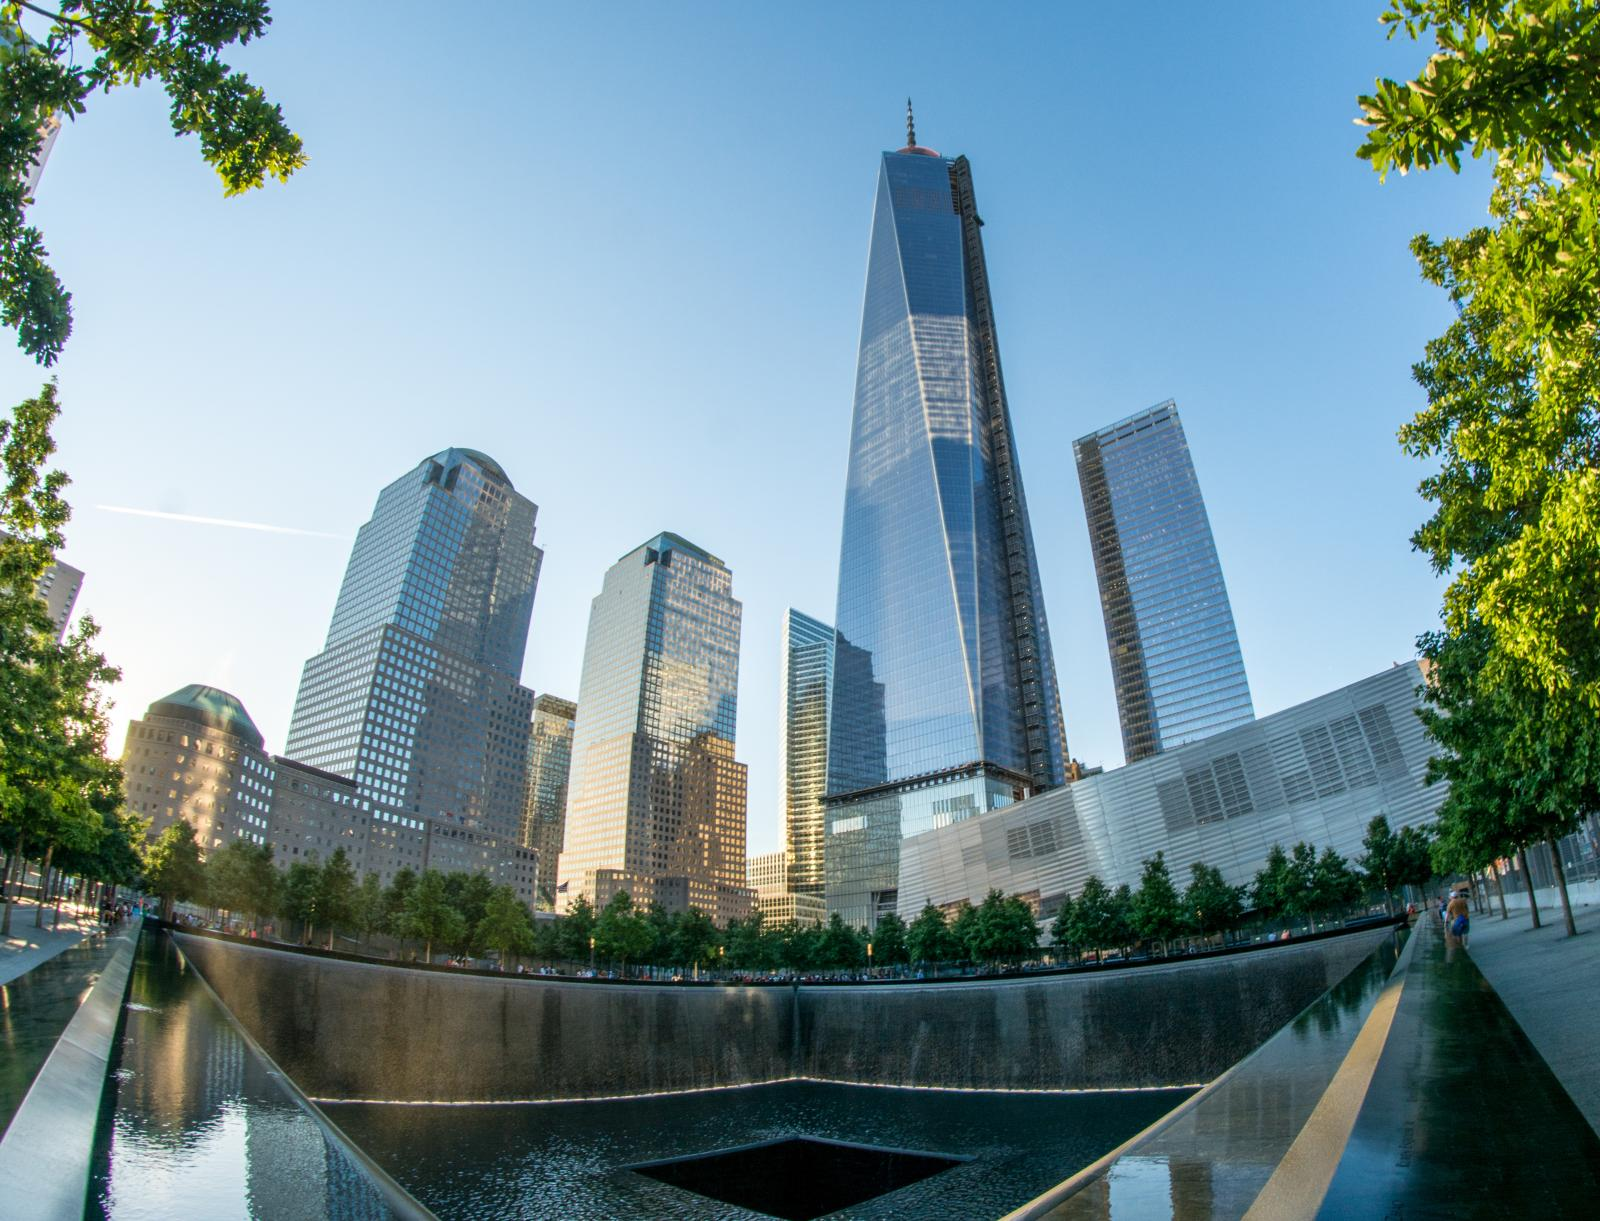 Top 10 FREE things to do NYC 9/11 Memorial